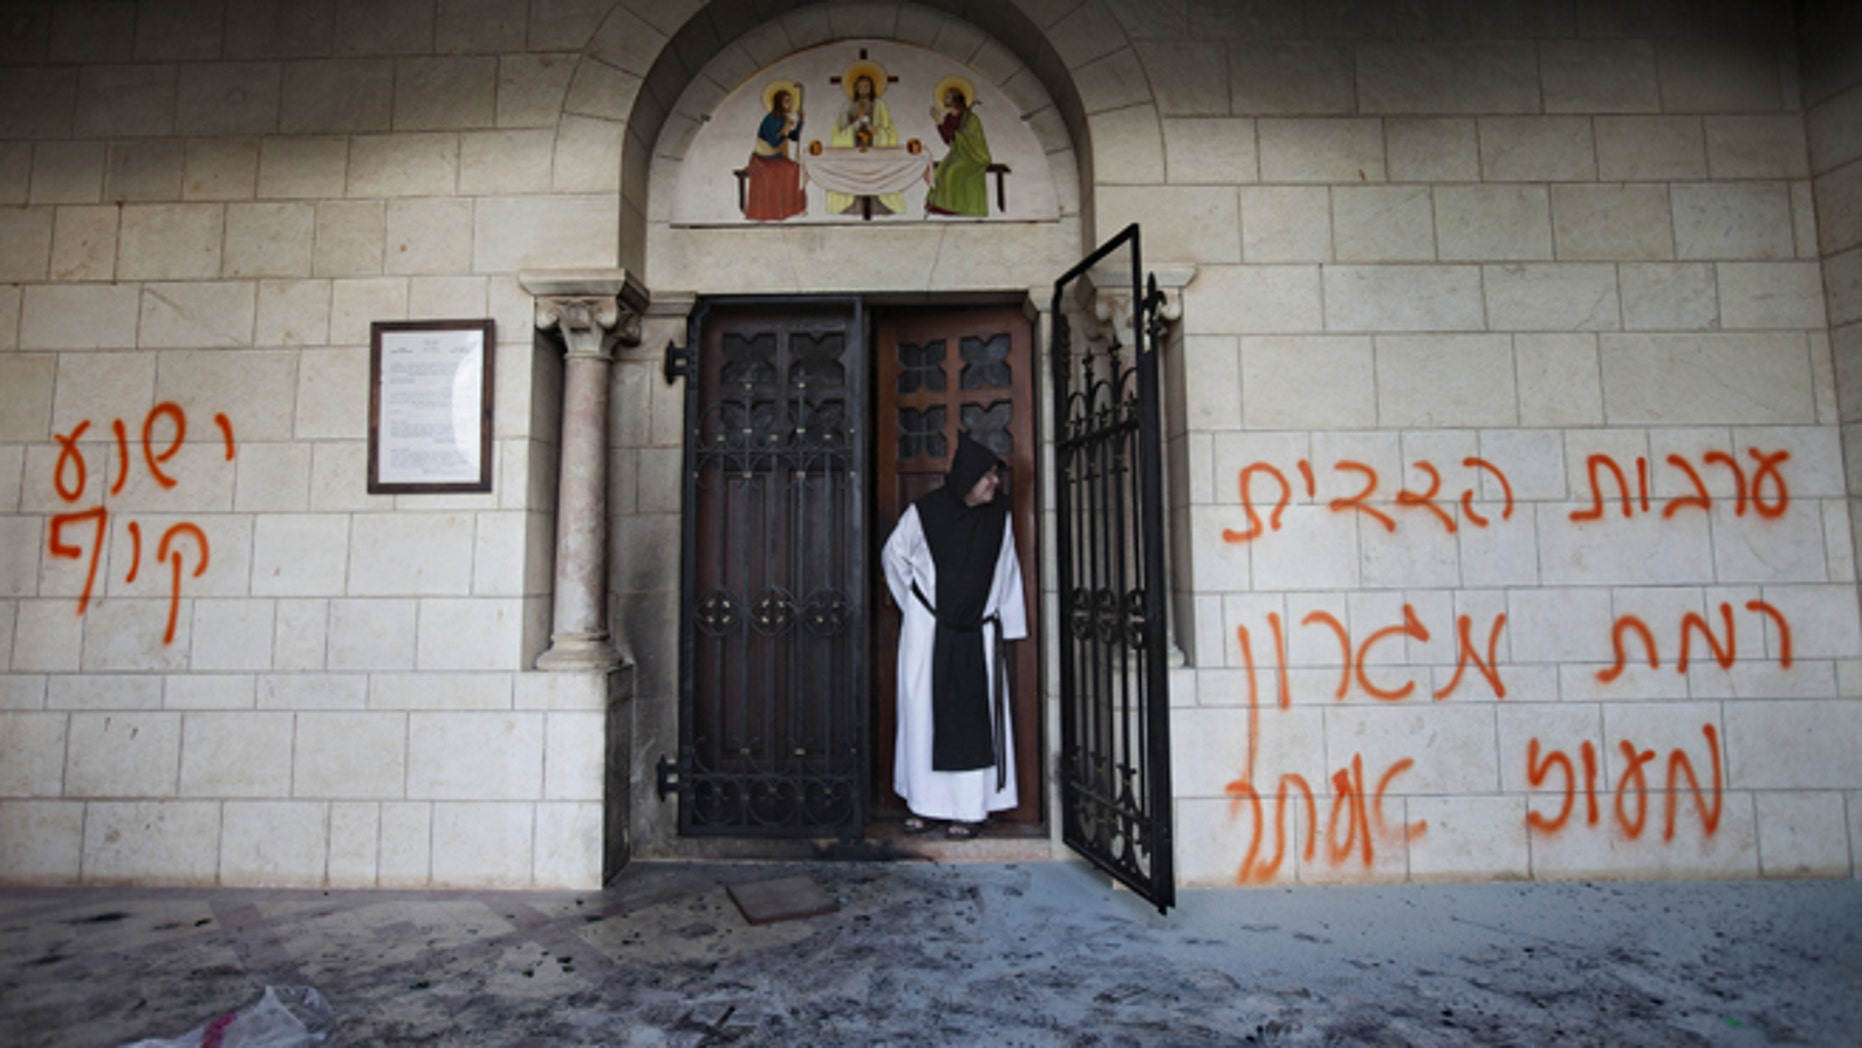 Sept. 4, 2012: A Catholic monk stands in a doorway of the Latrun Trappist Monastery where Israeli police say vandals spray-painted anti-Christian and pro-settler graffiti and set the monastery's door on fire, in Latrun, between Jerusalem and Tel Aviv, Israel.